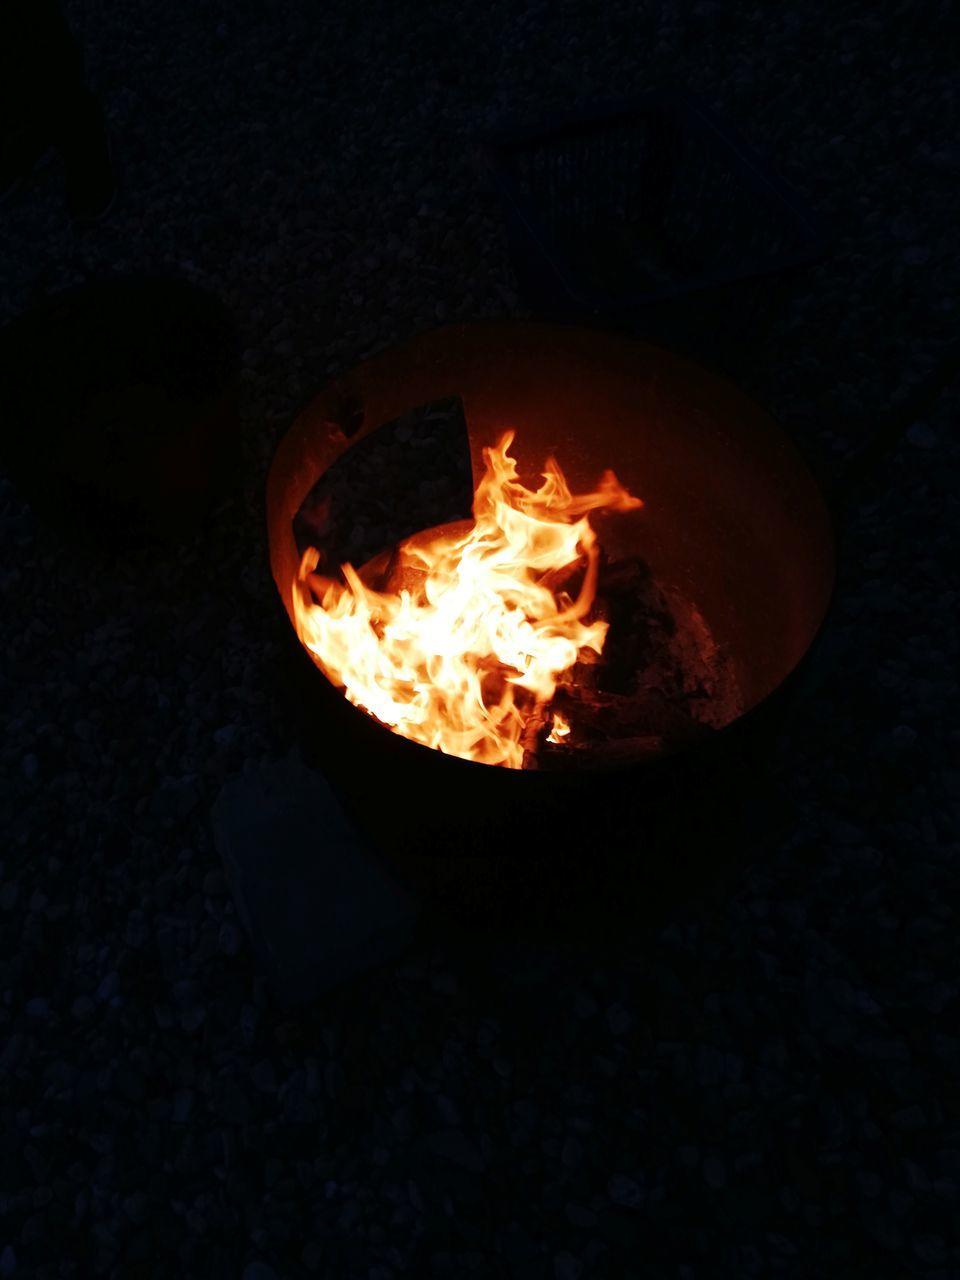 HIGH ANGLE VIEW OF FIRE BURNING IN THE DARK